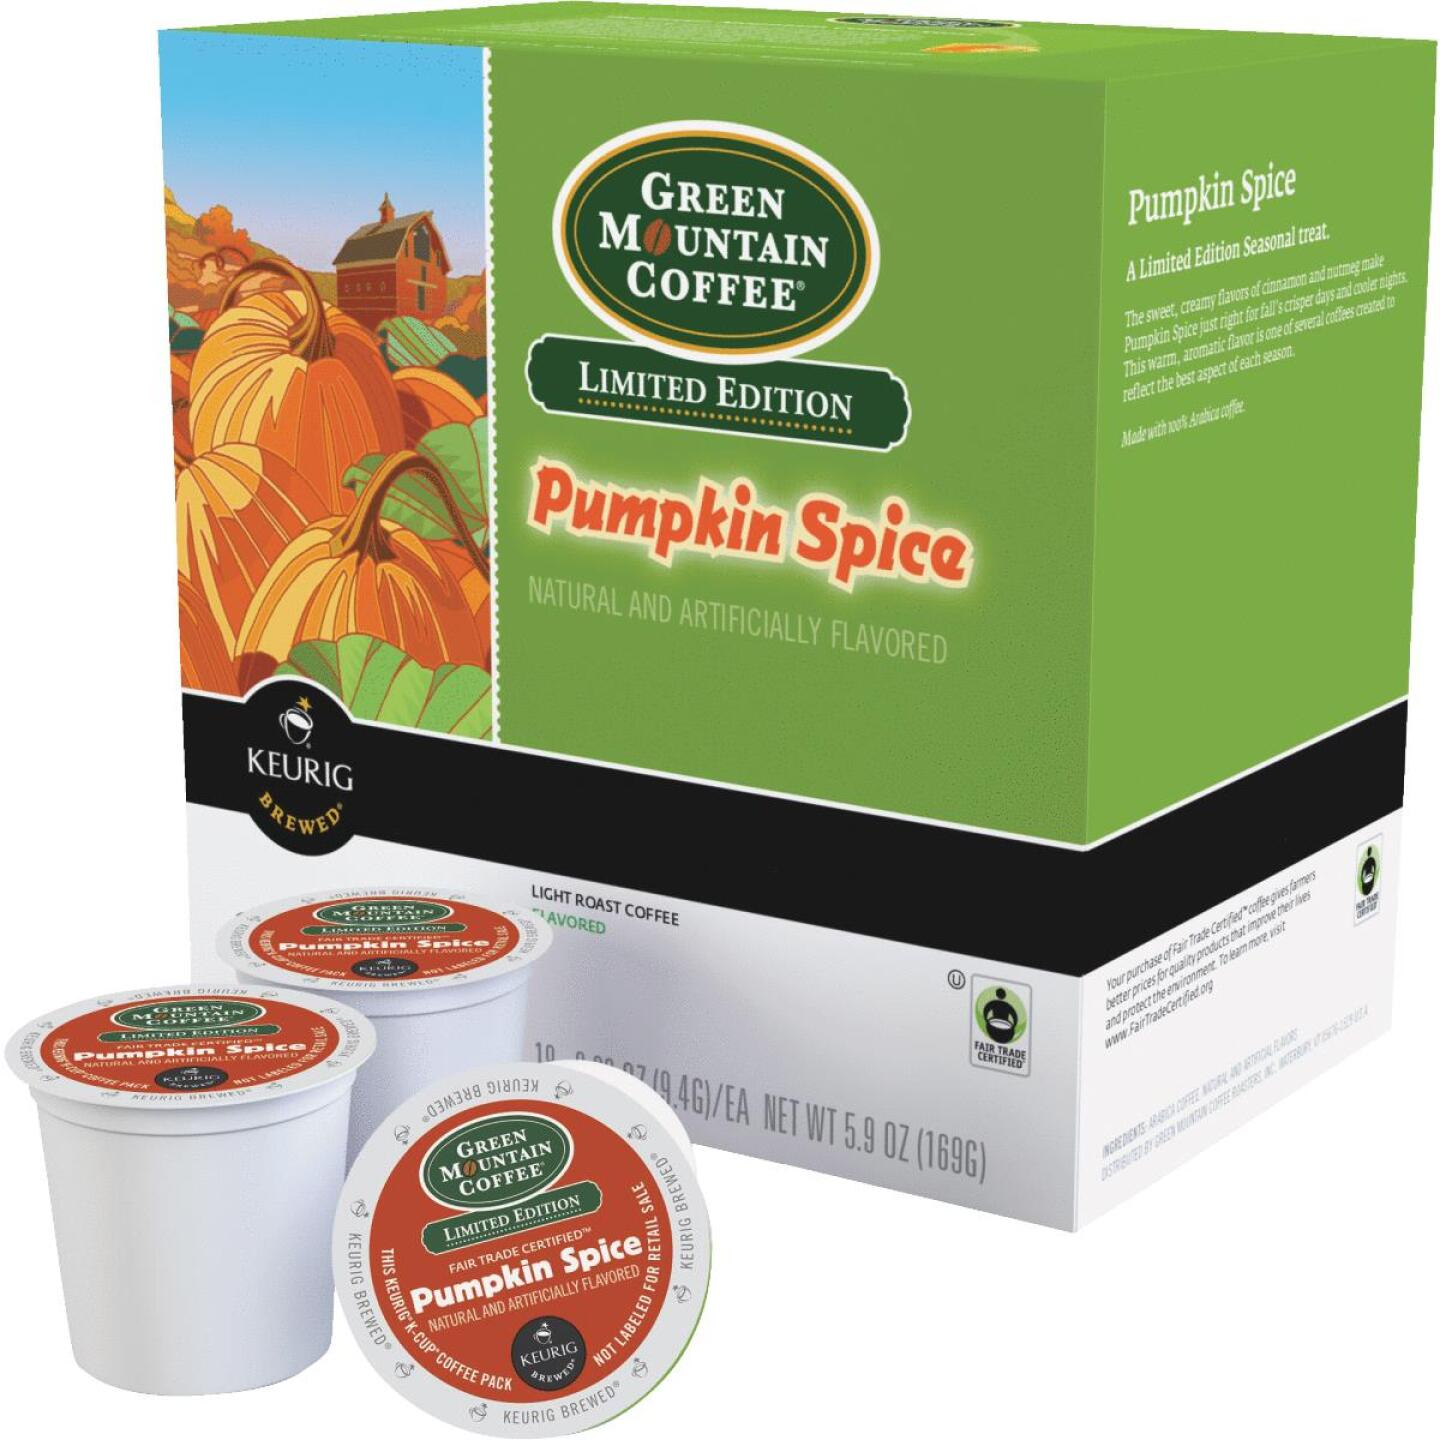 Keurig Green Mountain Pumpkin Spice Coffee  K-Cup (18-Pack) Image 1